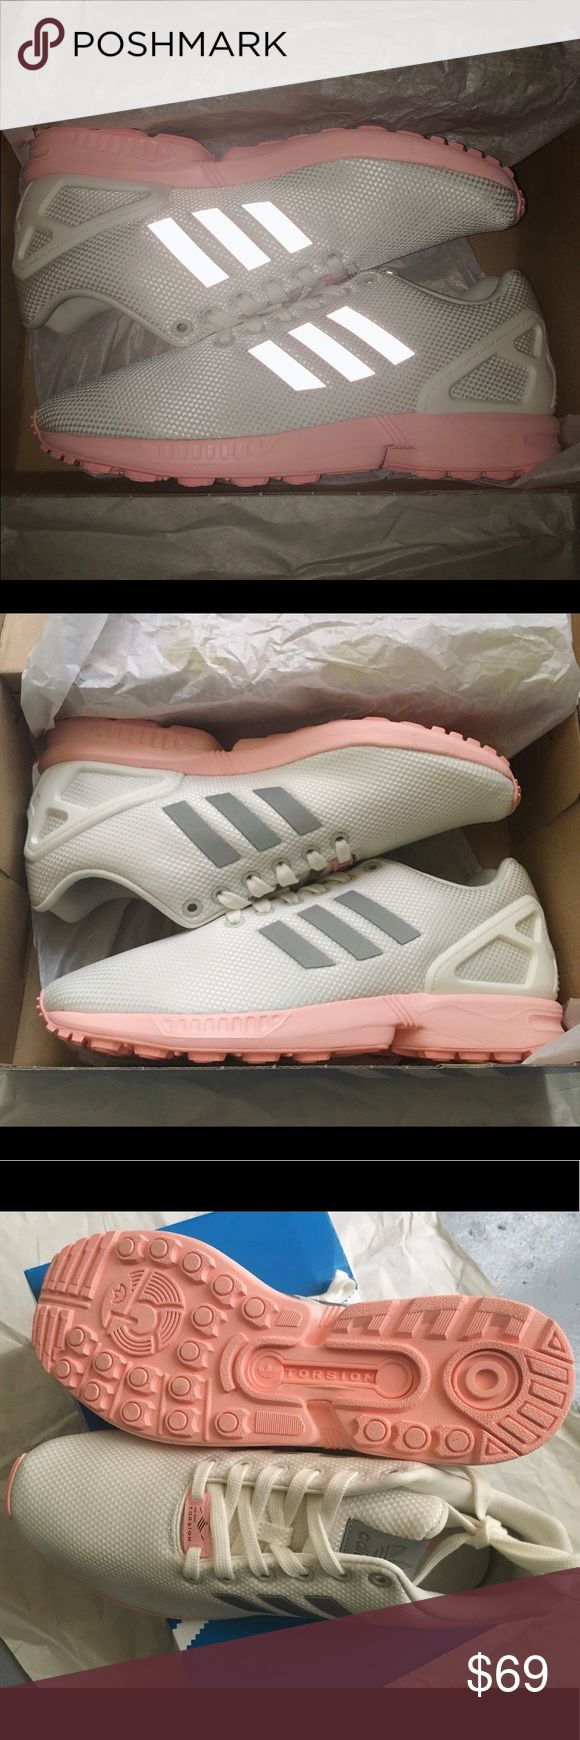 ADIDAS ZX FLUX WHITE REFLECTIVE PINK SHOES BA7642 100% AUTHENTIC + ORIGINAL BOX BRAND NEW / NEVER WORN  ADIDAS ZX FLUX WHITE METALLIC/REFLECTIVE GREY PINK SOLE SHOES (BA7642)  US WOMEN SIZE 9    PURCHASED ON ZUMIEZ.COM ORIGINAL PRICE $89.95 BEFORE SHIPPING+TAX   READY TO SHIP (US ONLY)  PAYPAL ONLY adidas Shoes Sneakers